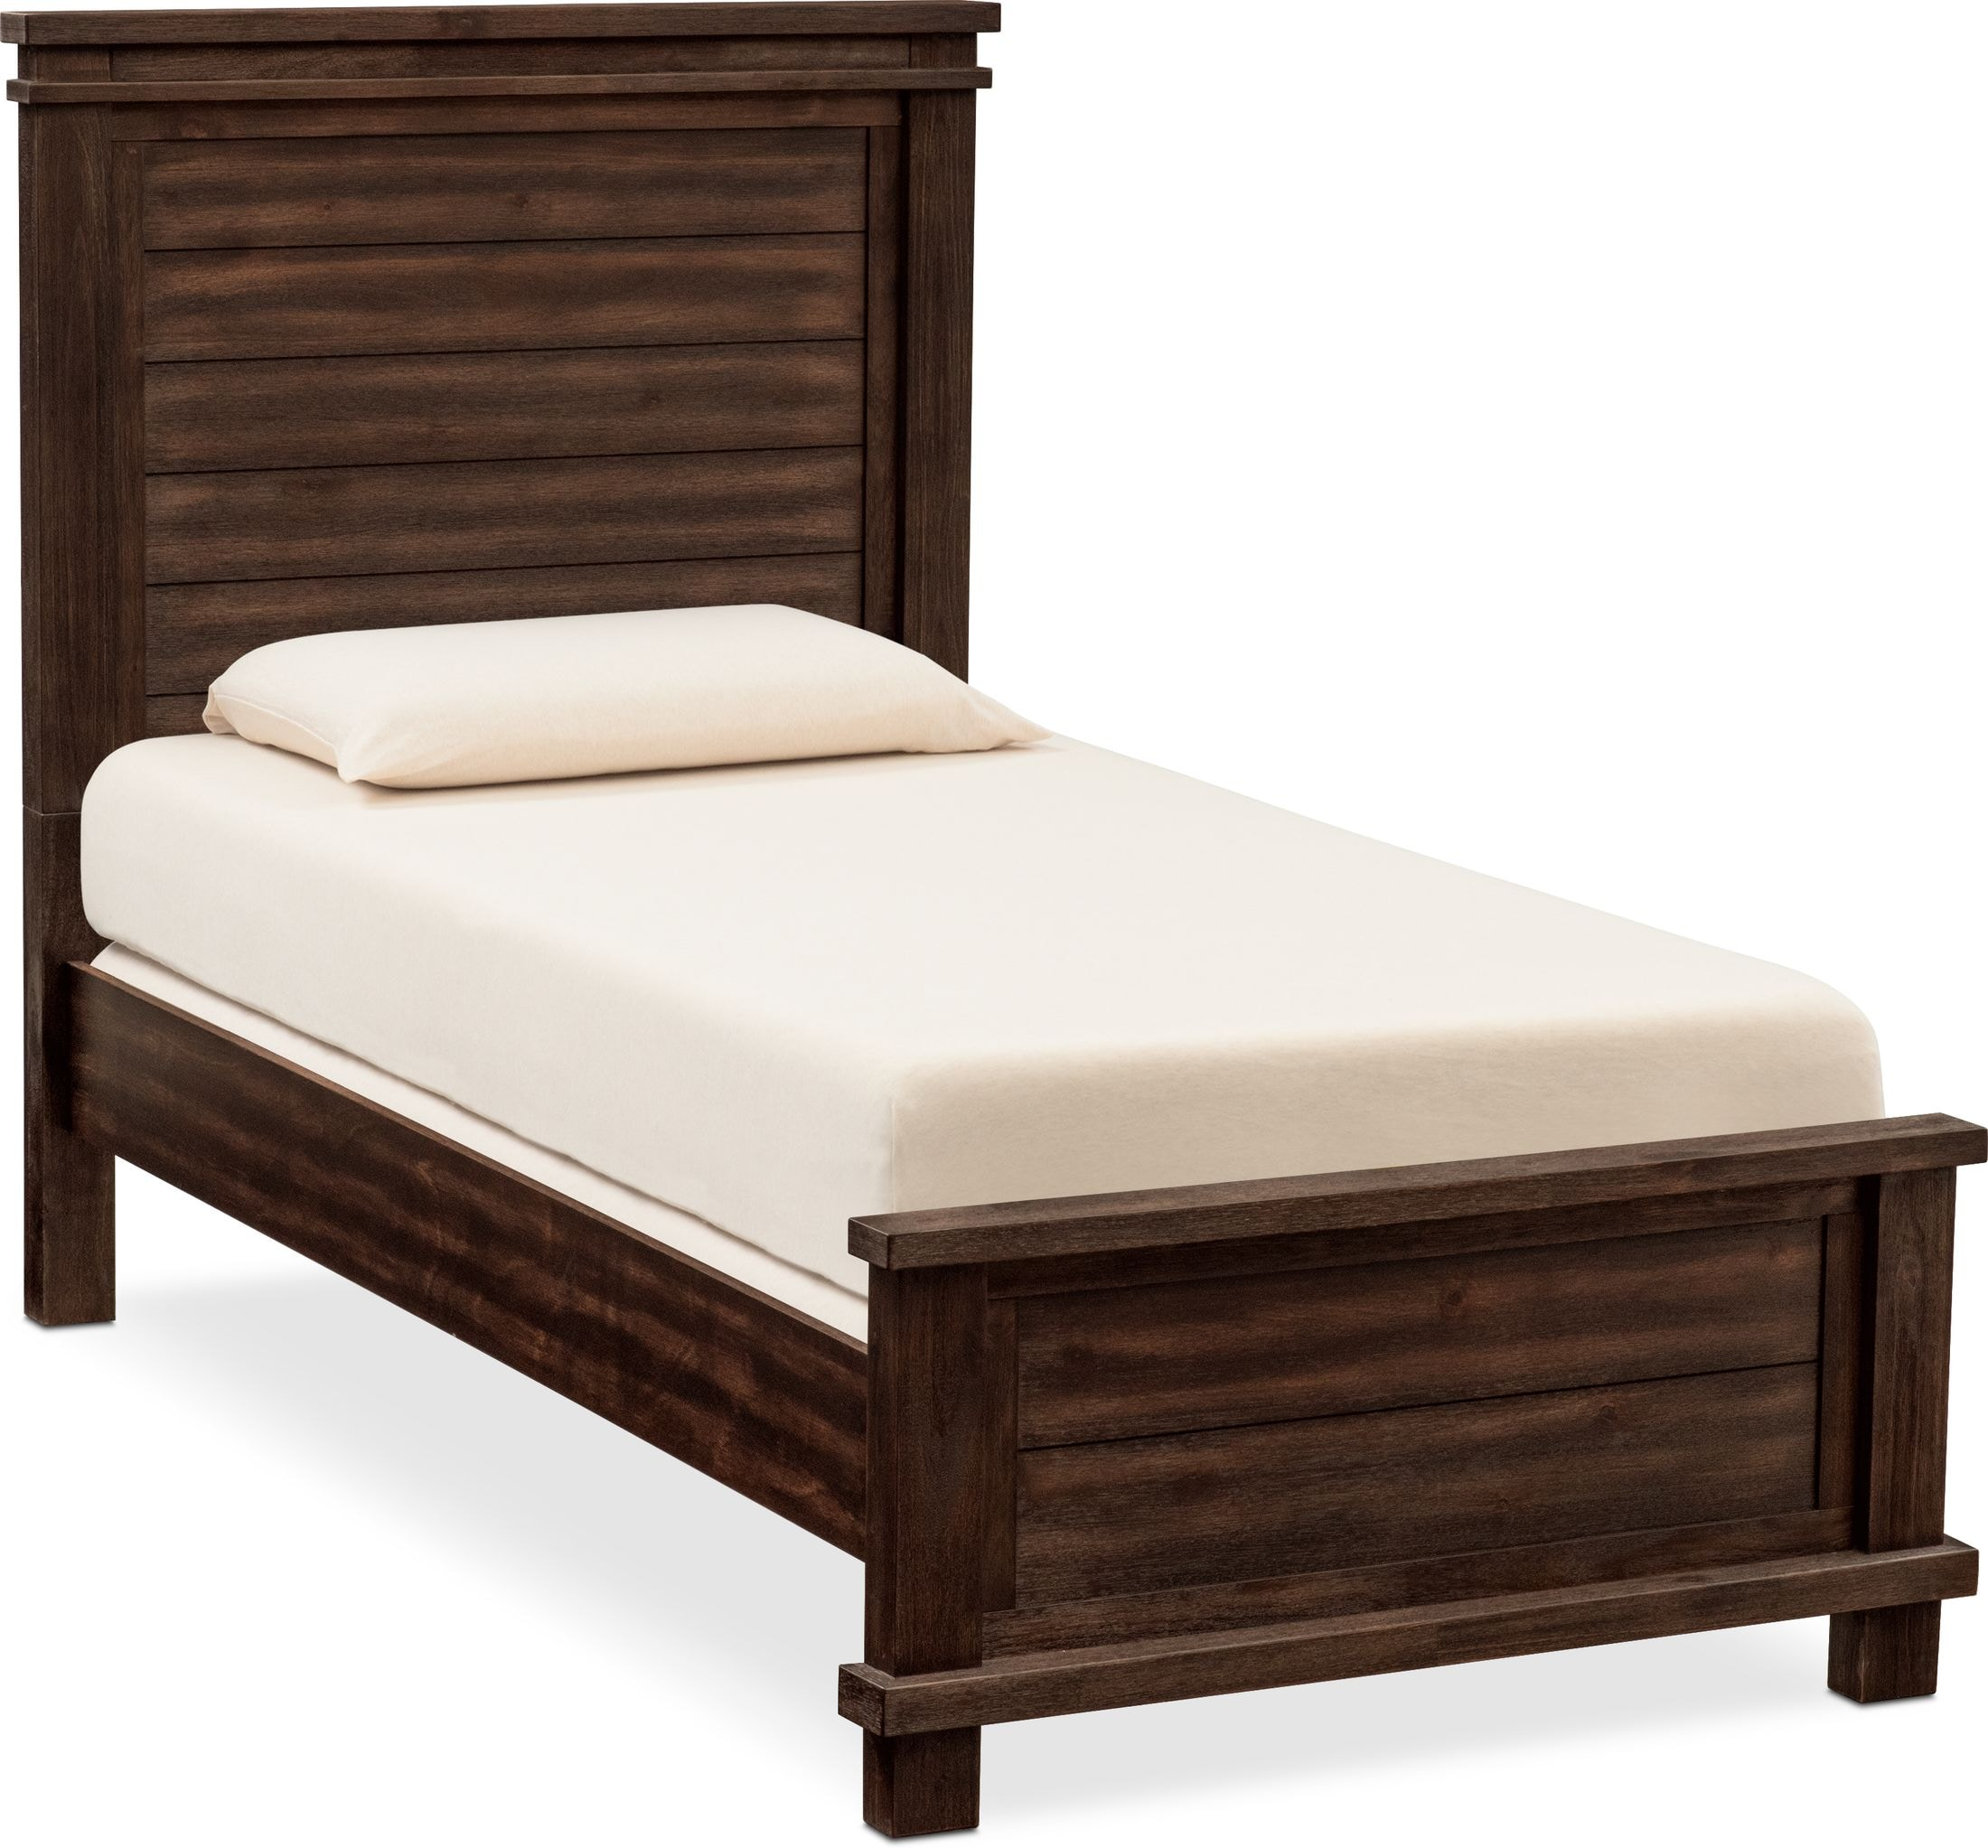 Bedroom Furniture - Tribeca Youth Bed